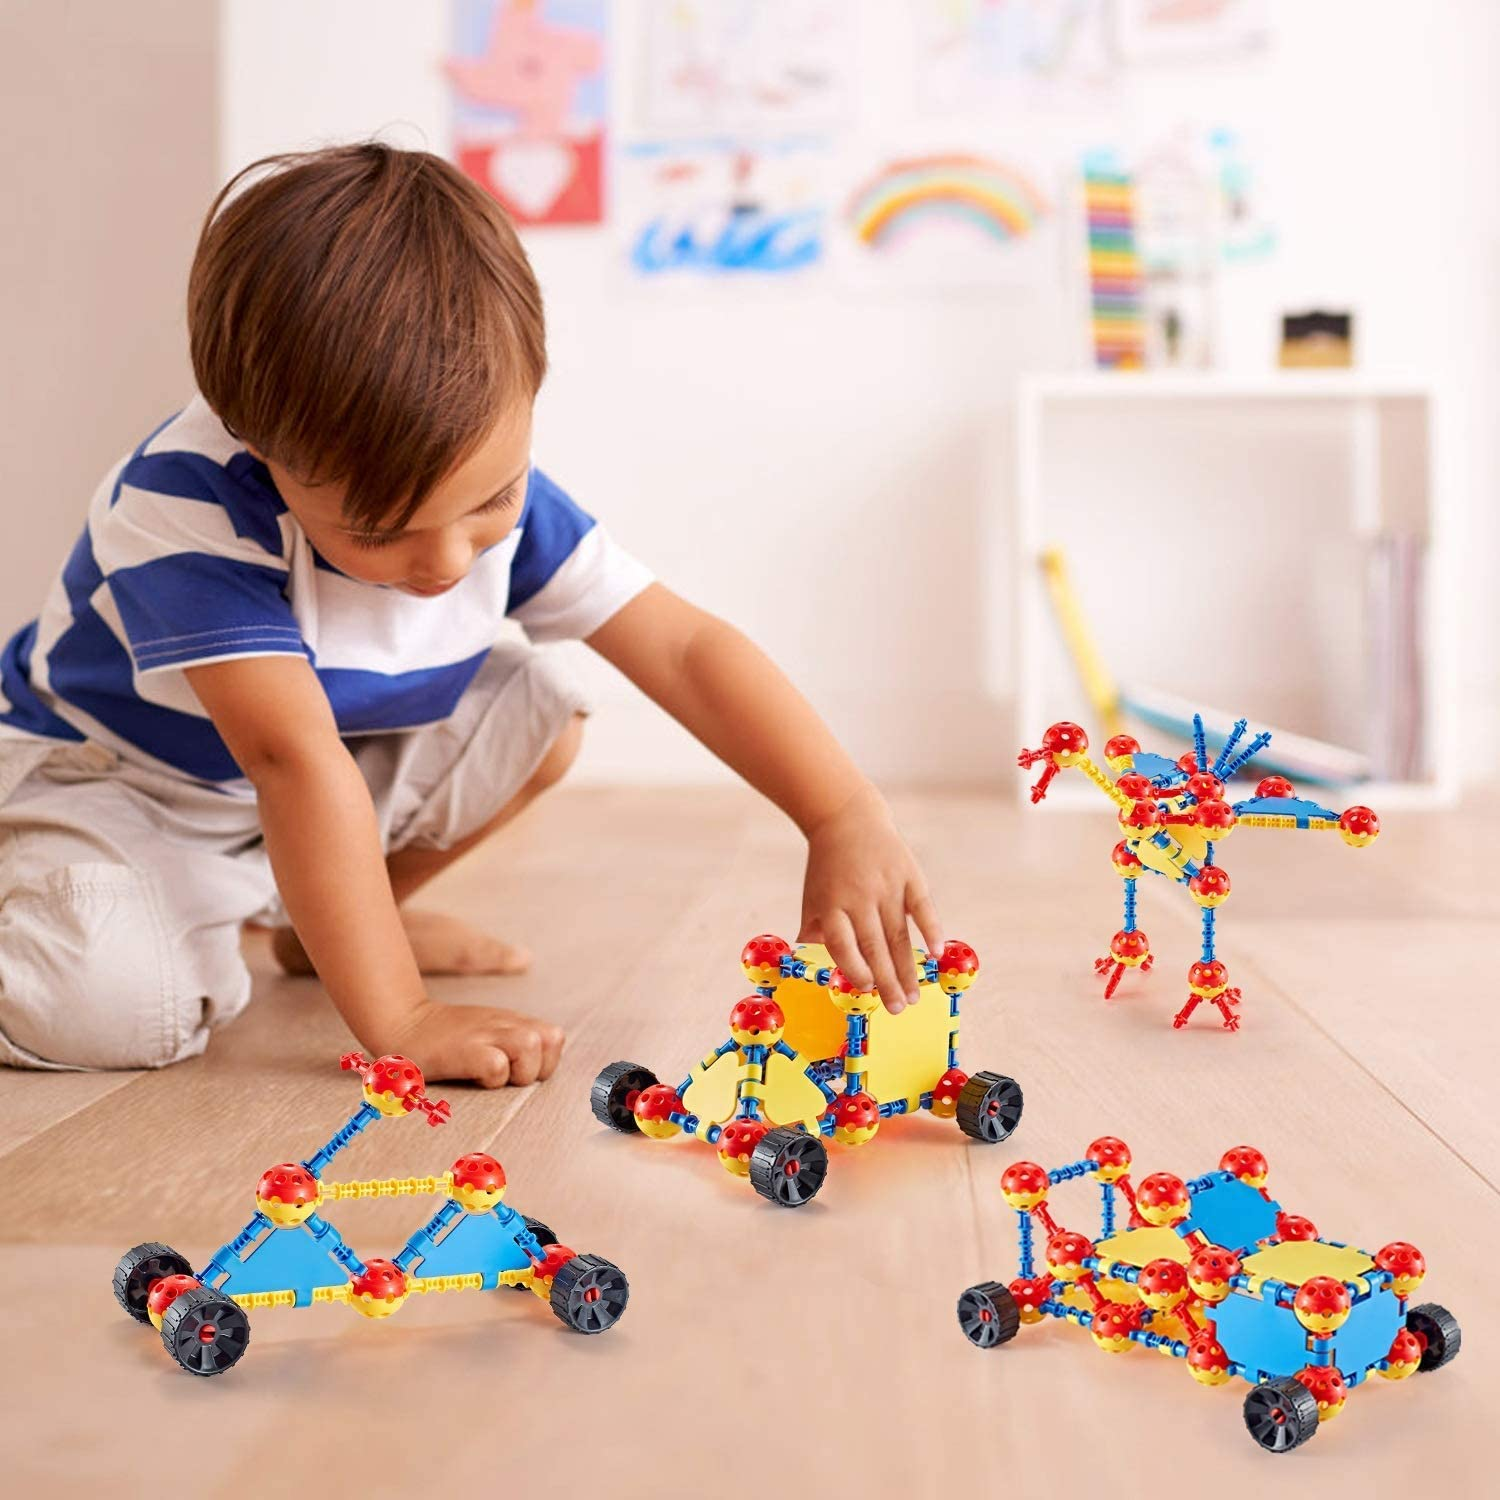 168 Pcs Creative Construction Engineering Educational Building Toy Set Fun Top Blocks Game Kit for Boys and Girls Age 3 4 5 6 7 8 9 10 Year Old Gift for Kids STEM Learning Construction Building Toys